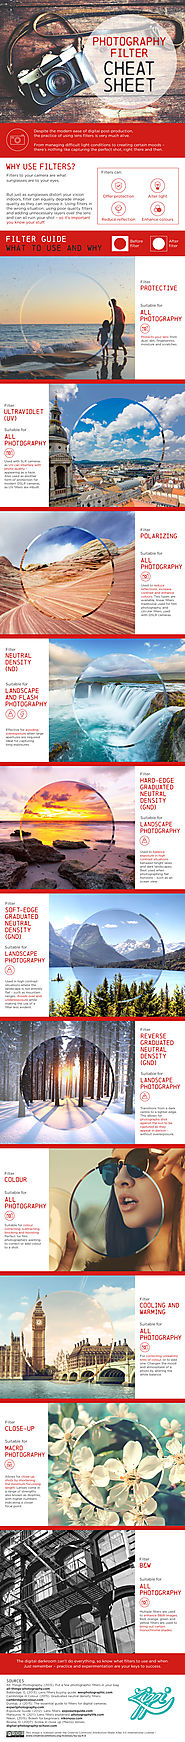 Cheat Sheet : Photography Filters - When and how to use them